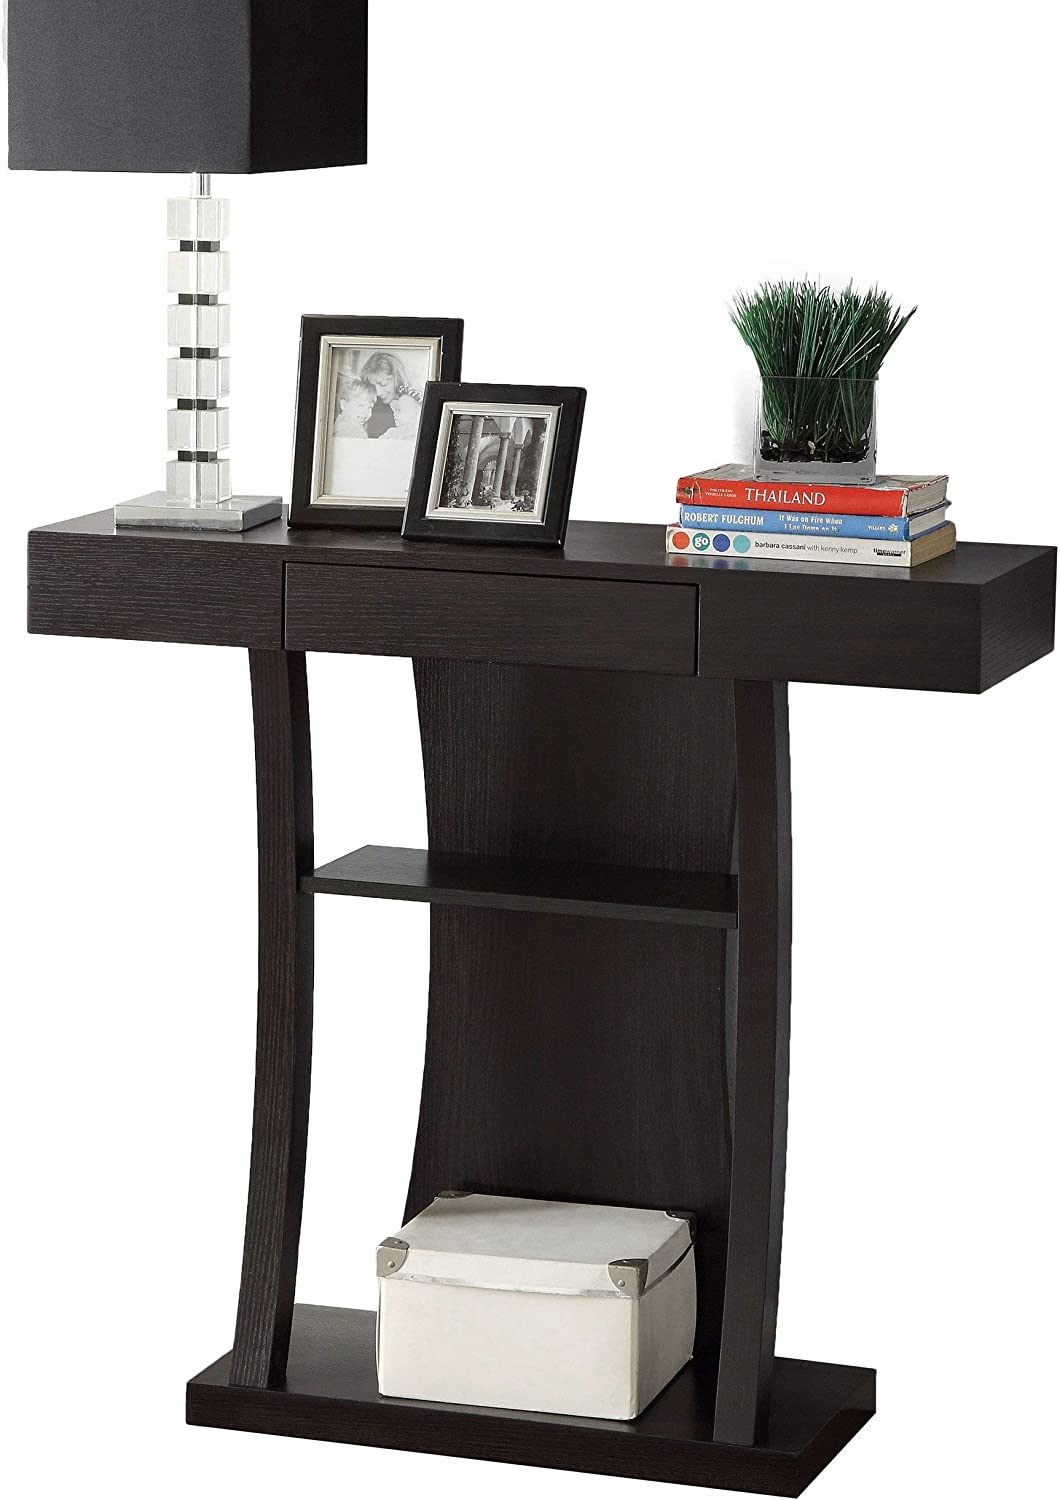 Coaster Home Furnishings T-Shaped Console Table with 2 Shelves Cappuccino